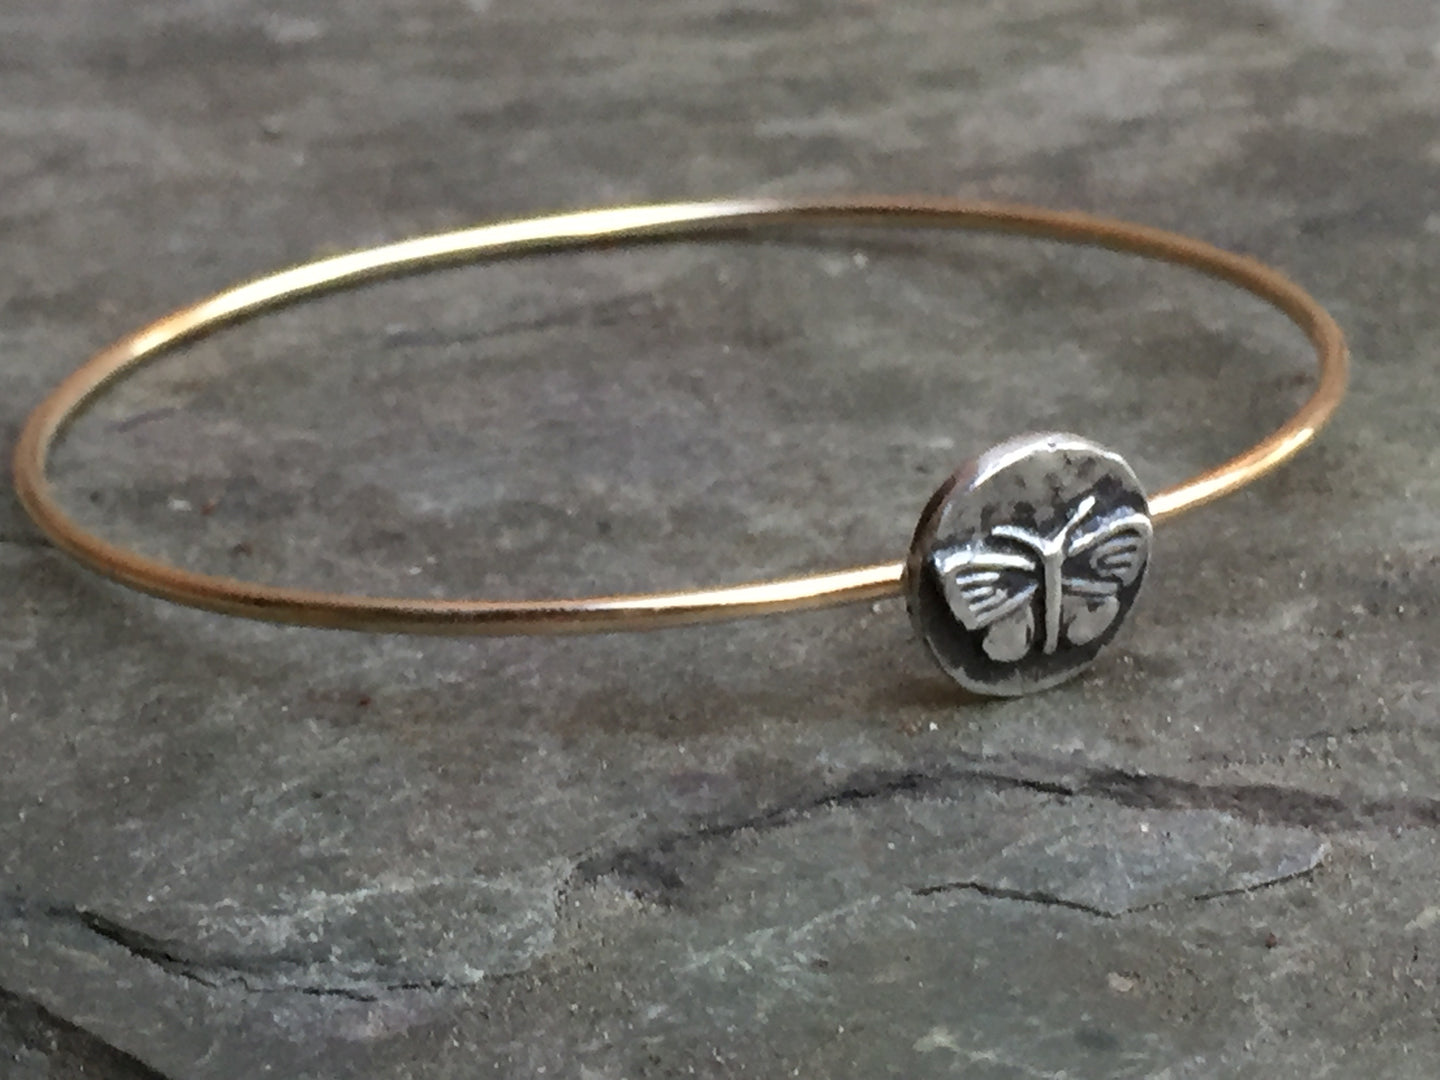 Sonya Ooten gold bangle with butterfly disk charm